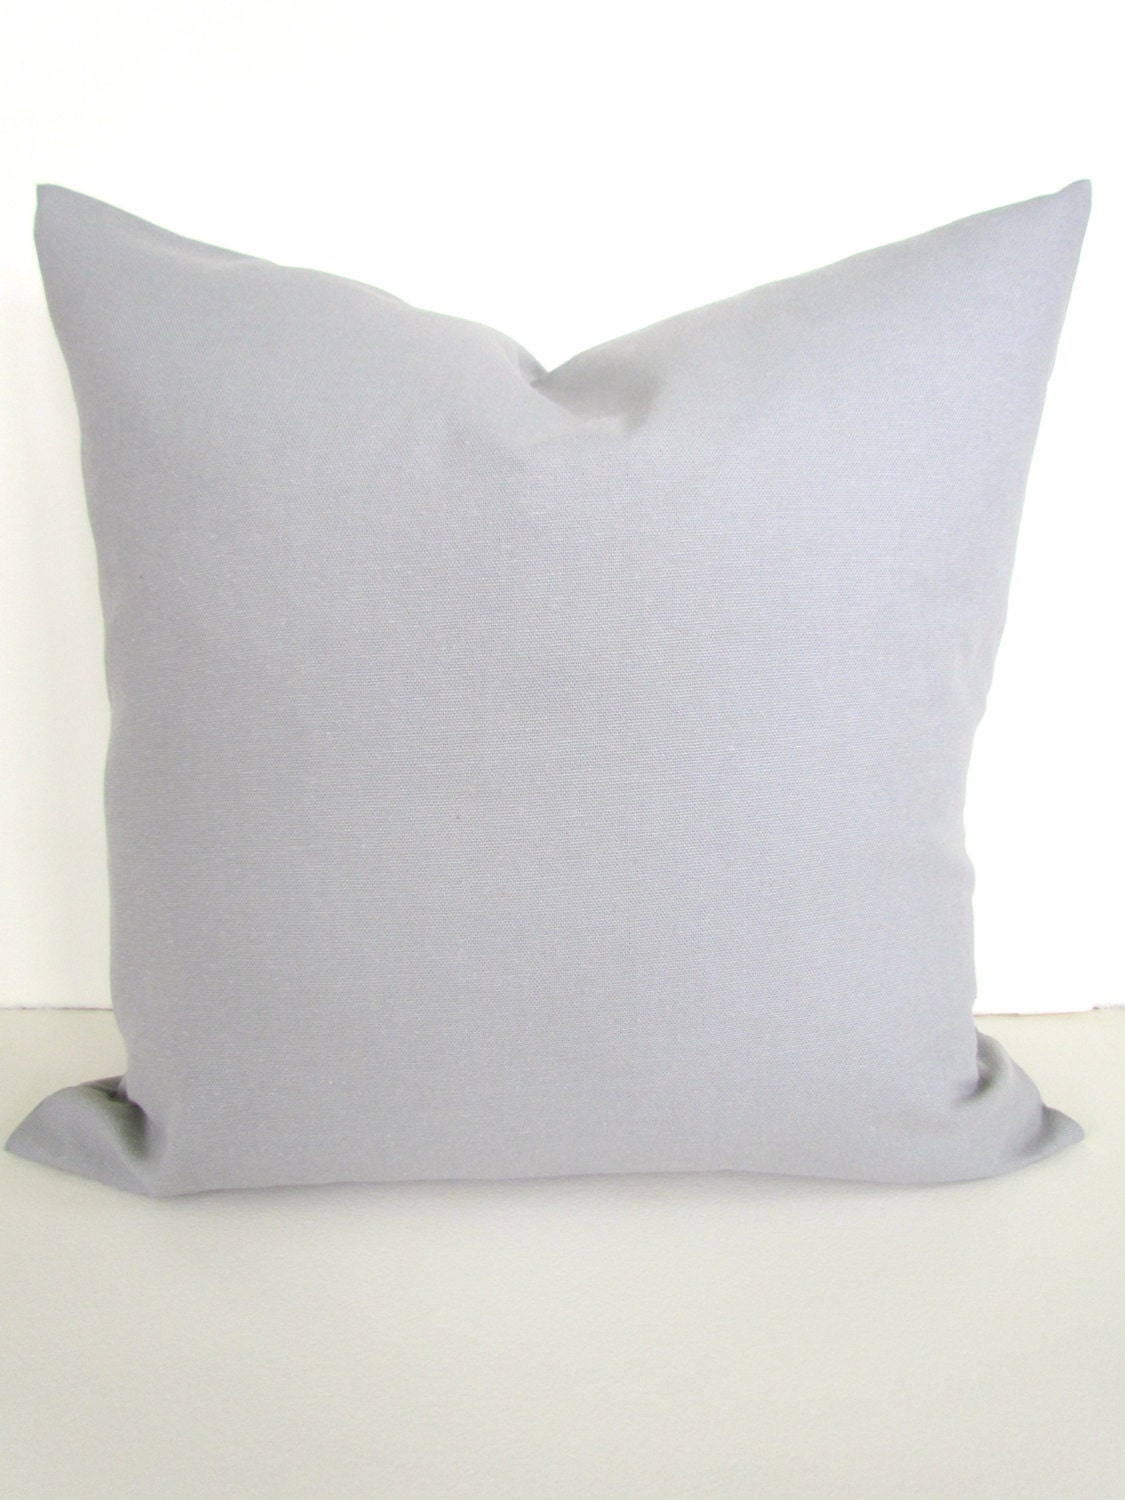 22x22 Throw Pillow Covers : PILLOWS 22x22 24x24 GRAY Throw Pillow Covers by SayItWithPillows